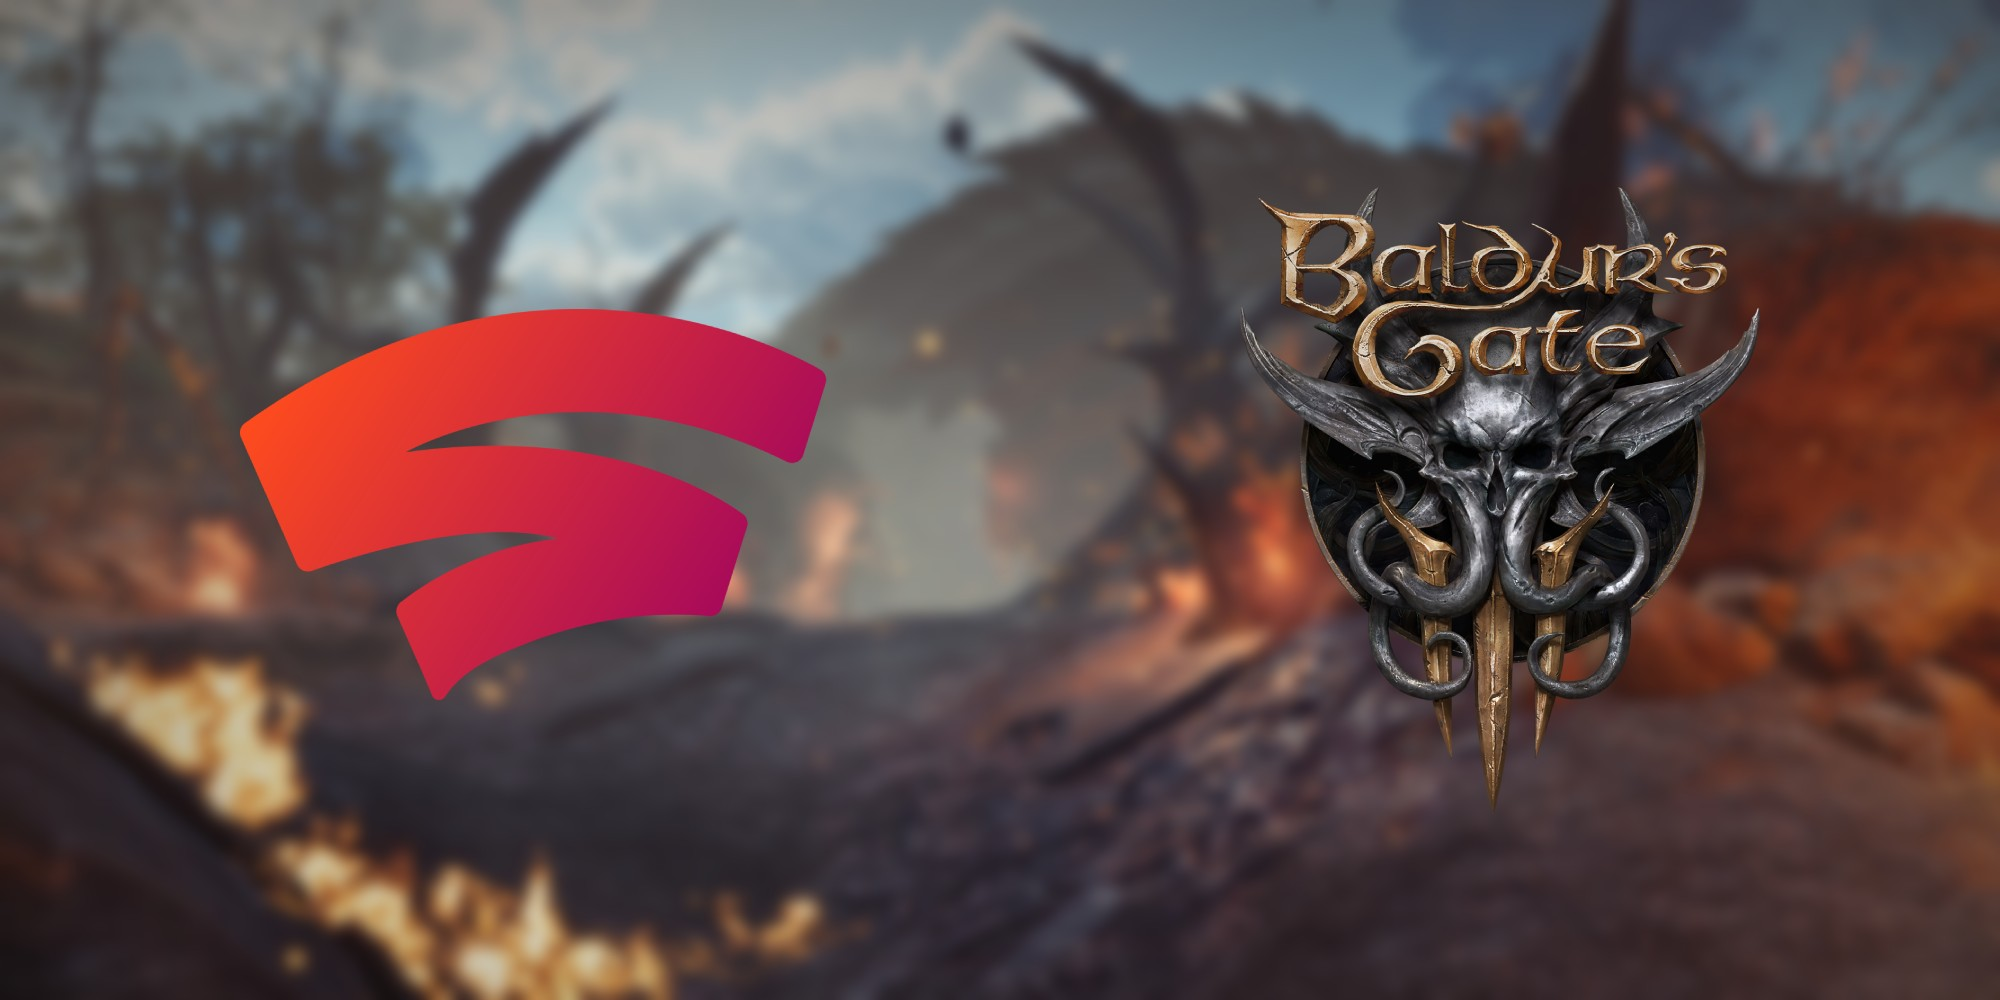 Baldur S Gate 3 Early Access Now Available On Google Stadia 9to5google